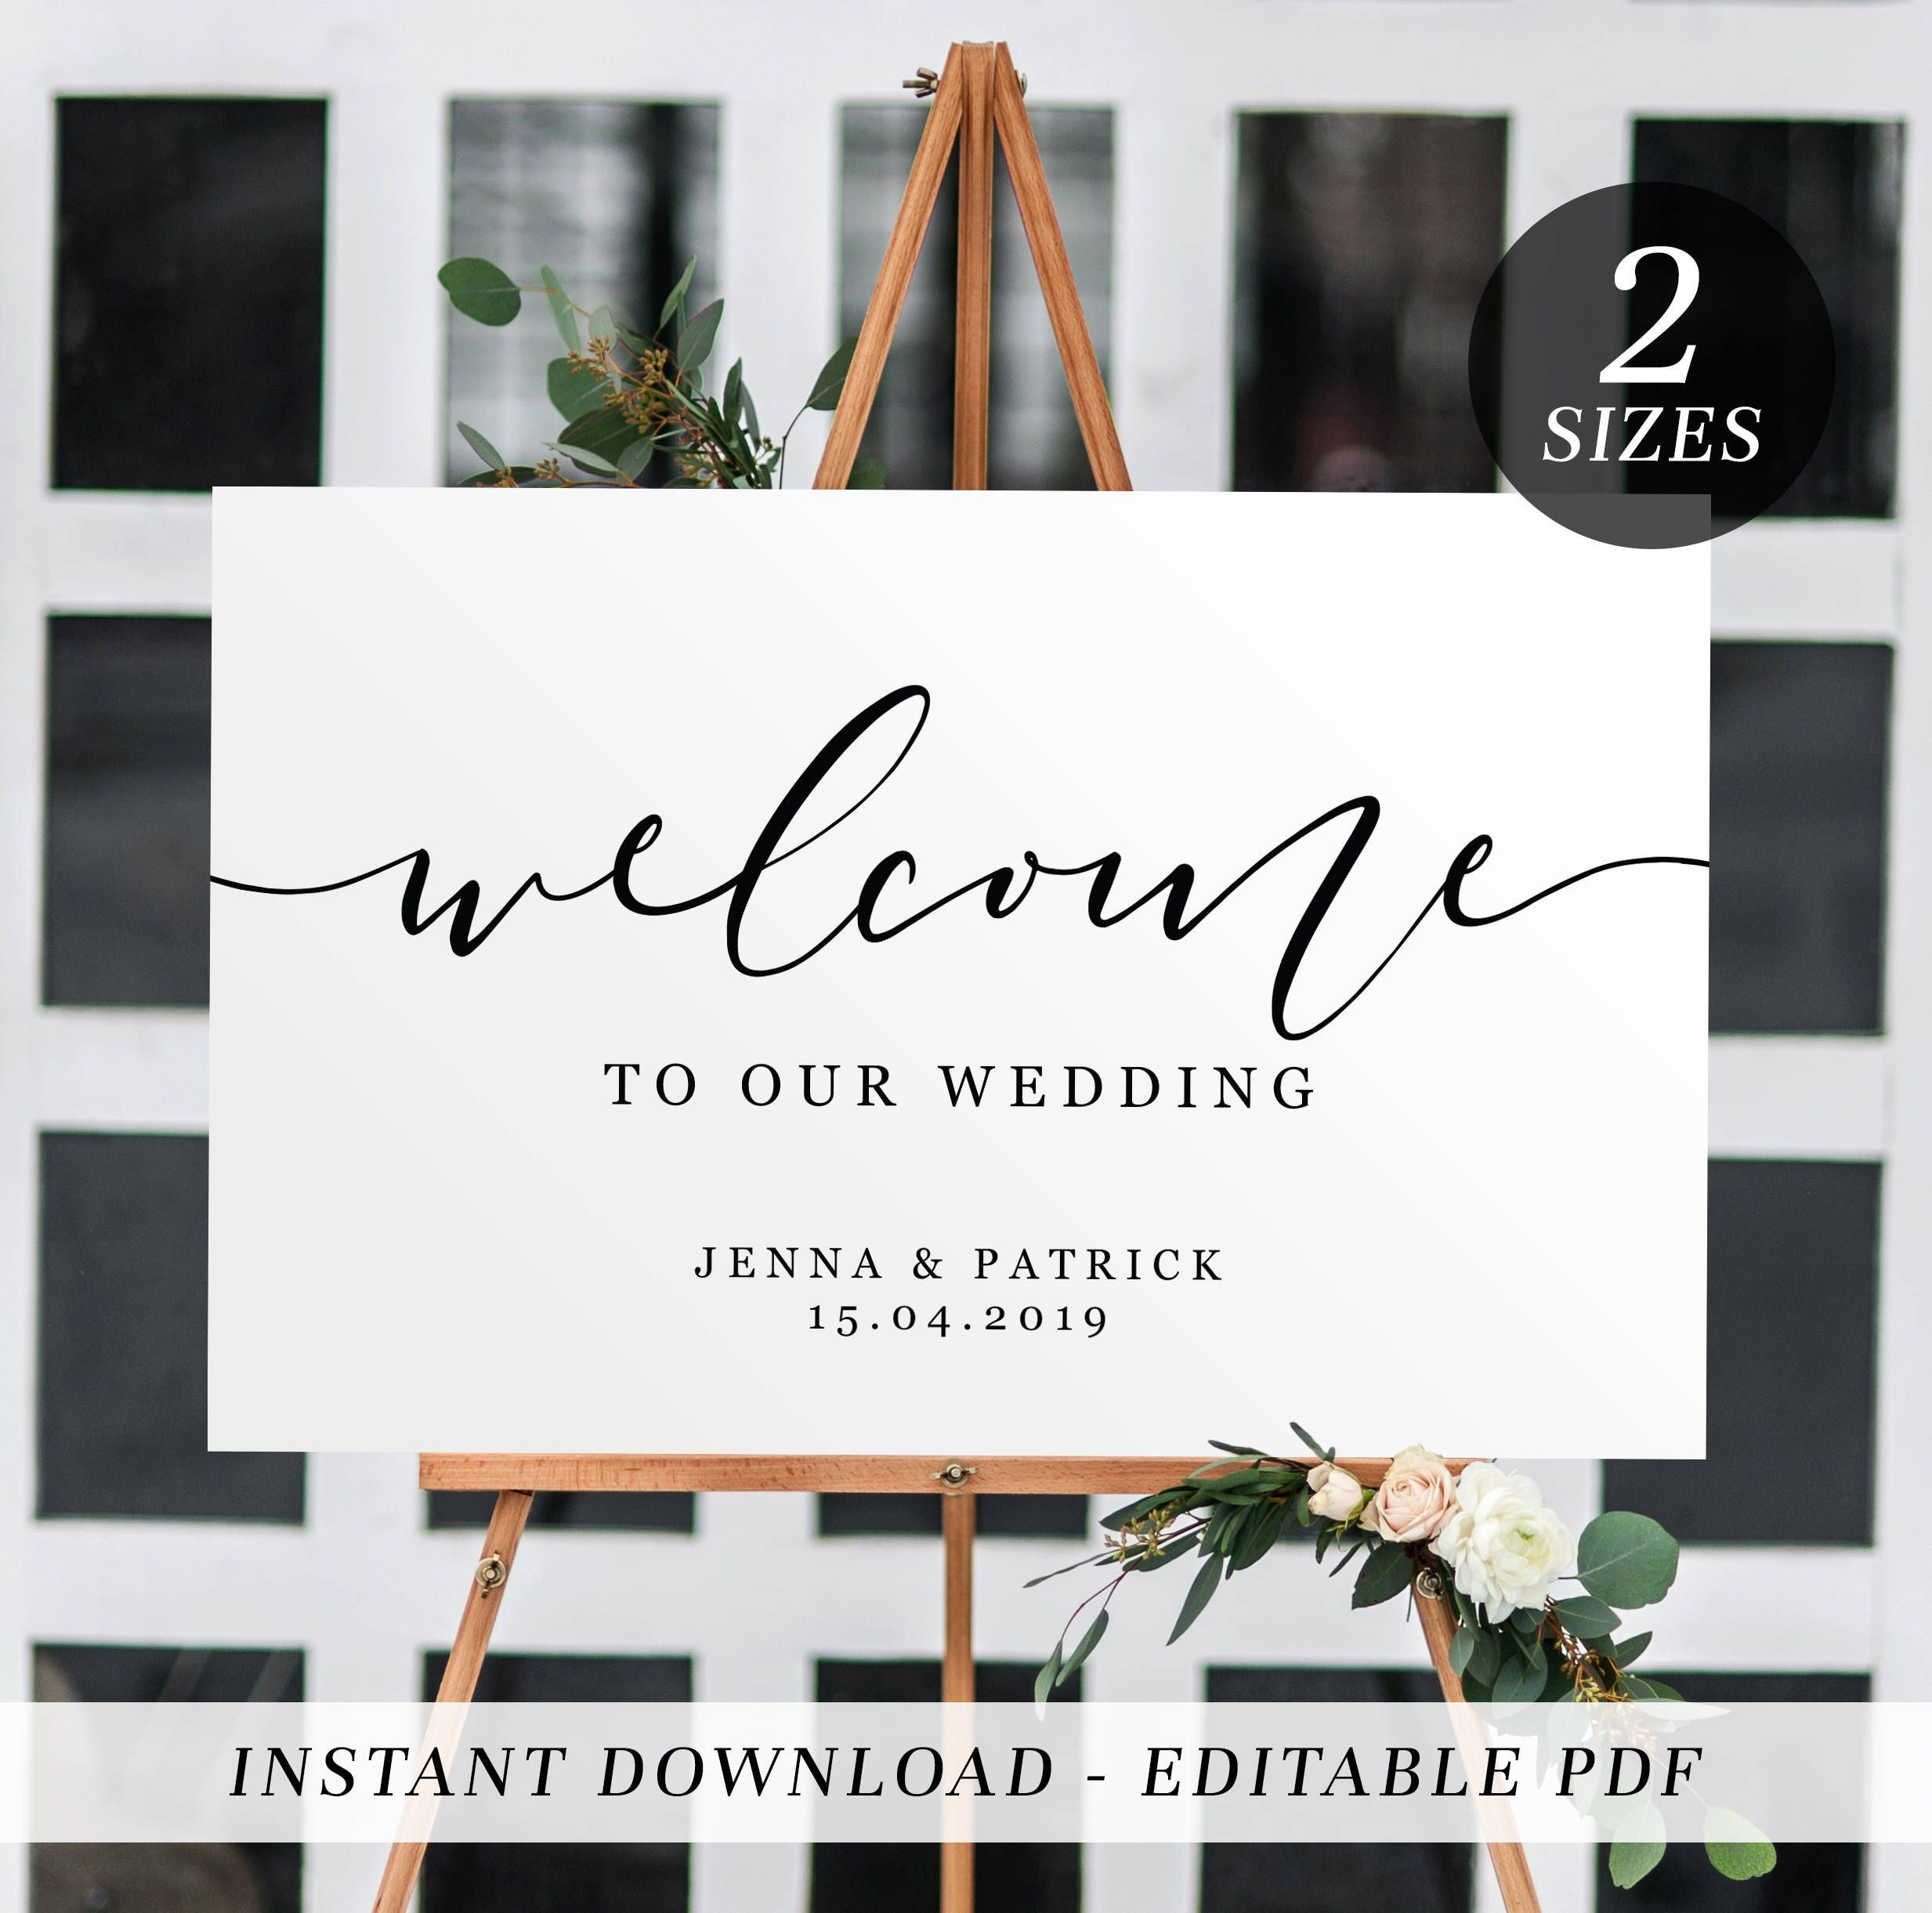 004 Rare Wedding Welcome Sign Template Free Design Full